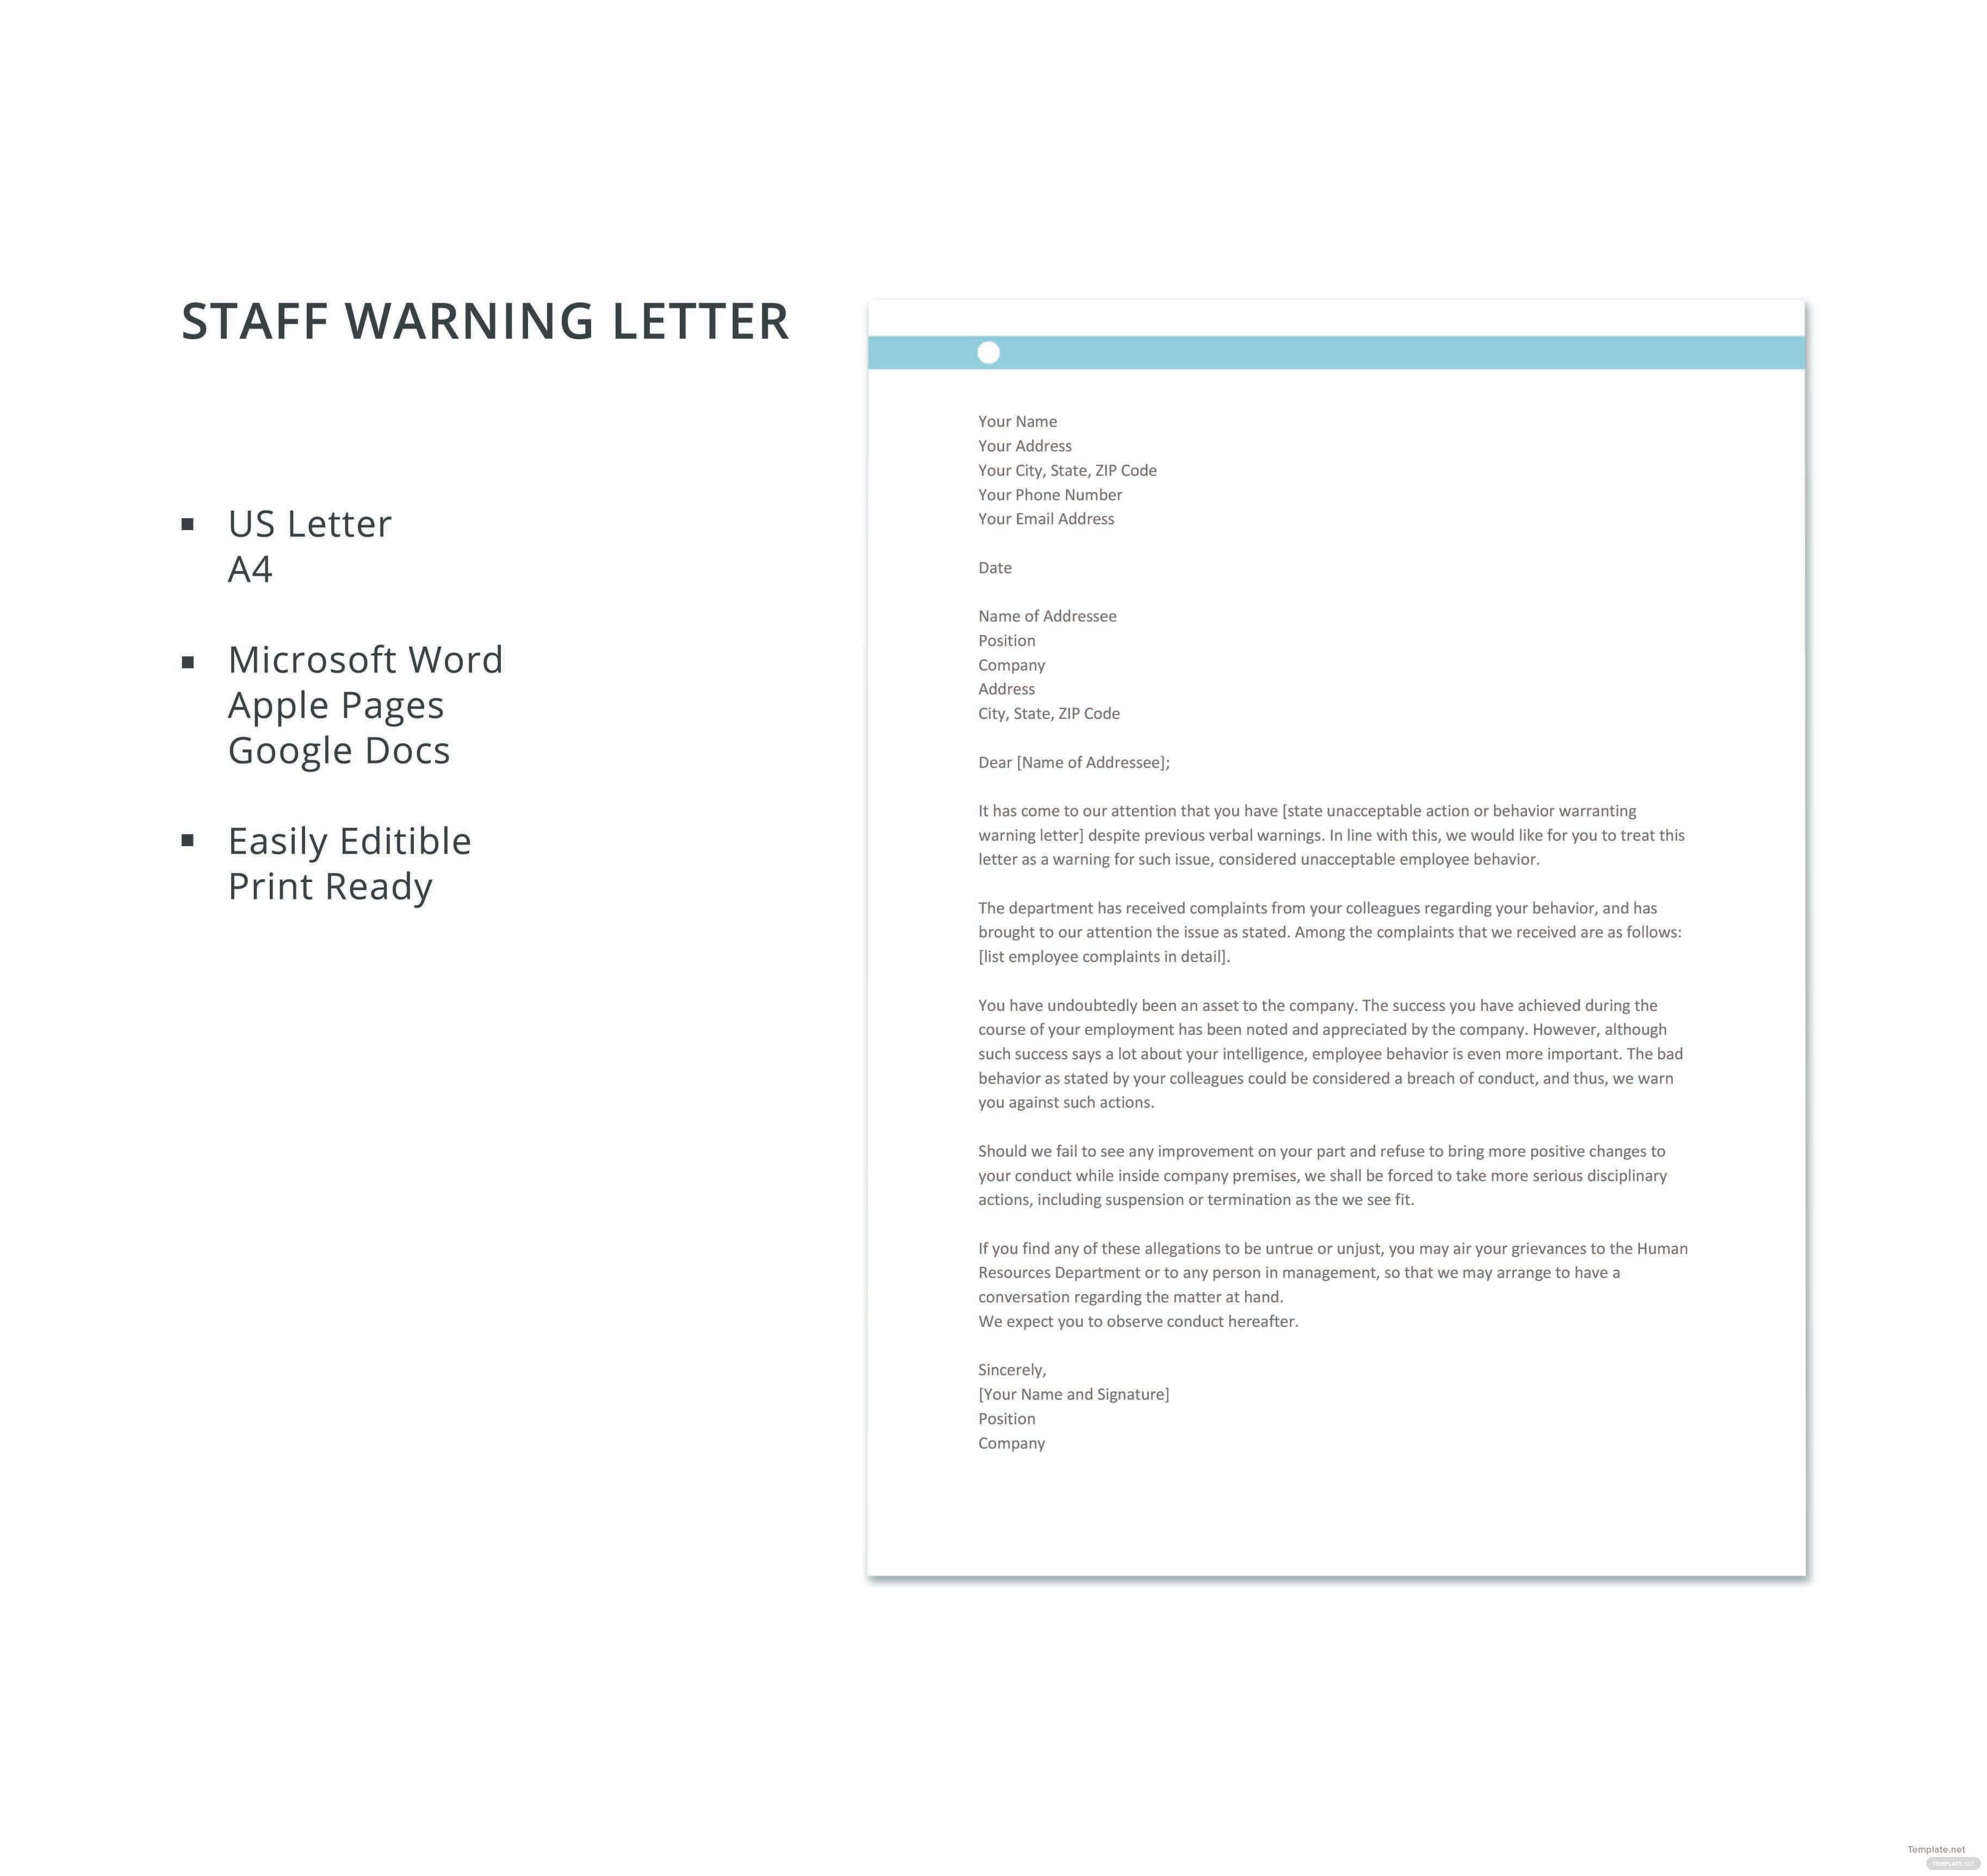 Staff warning letter template in microsoft word apple pages google click to see full template staff warning letter spiritdancerdesigns Images